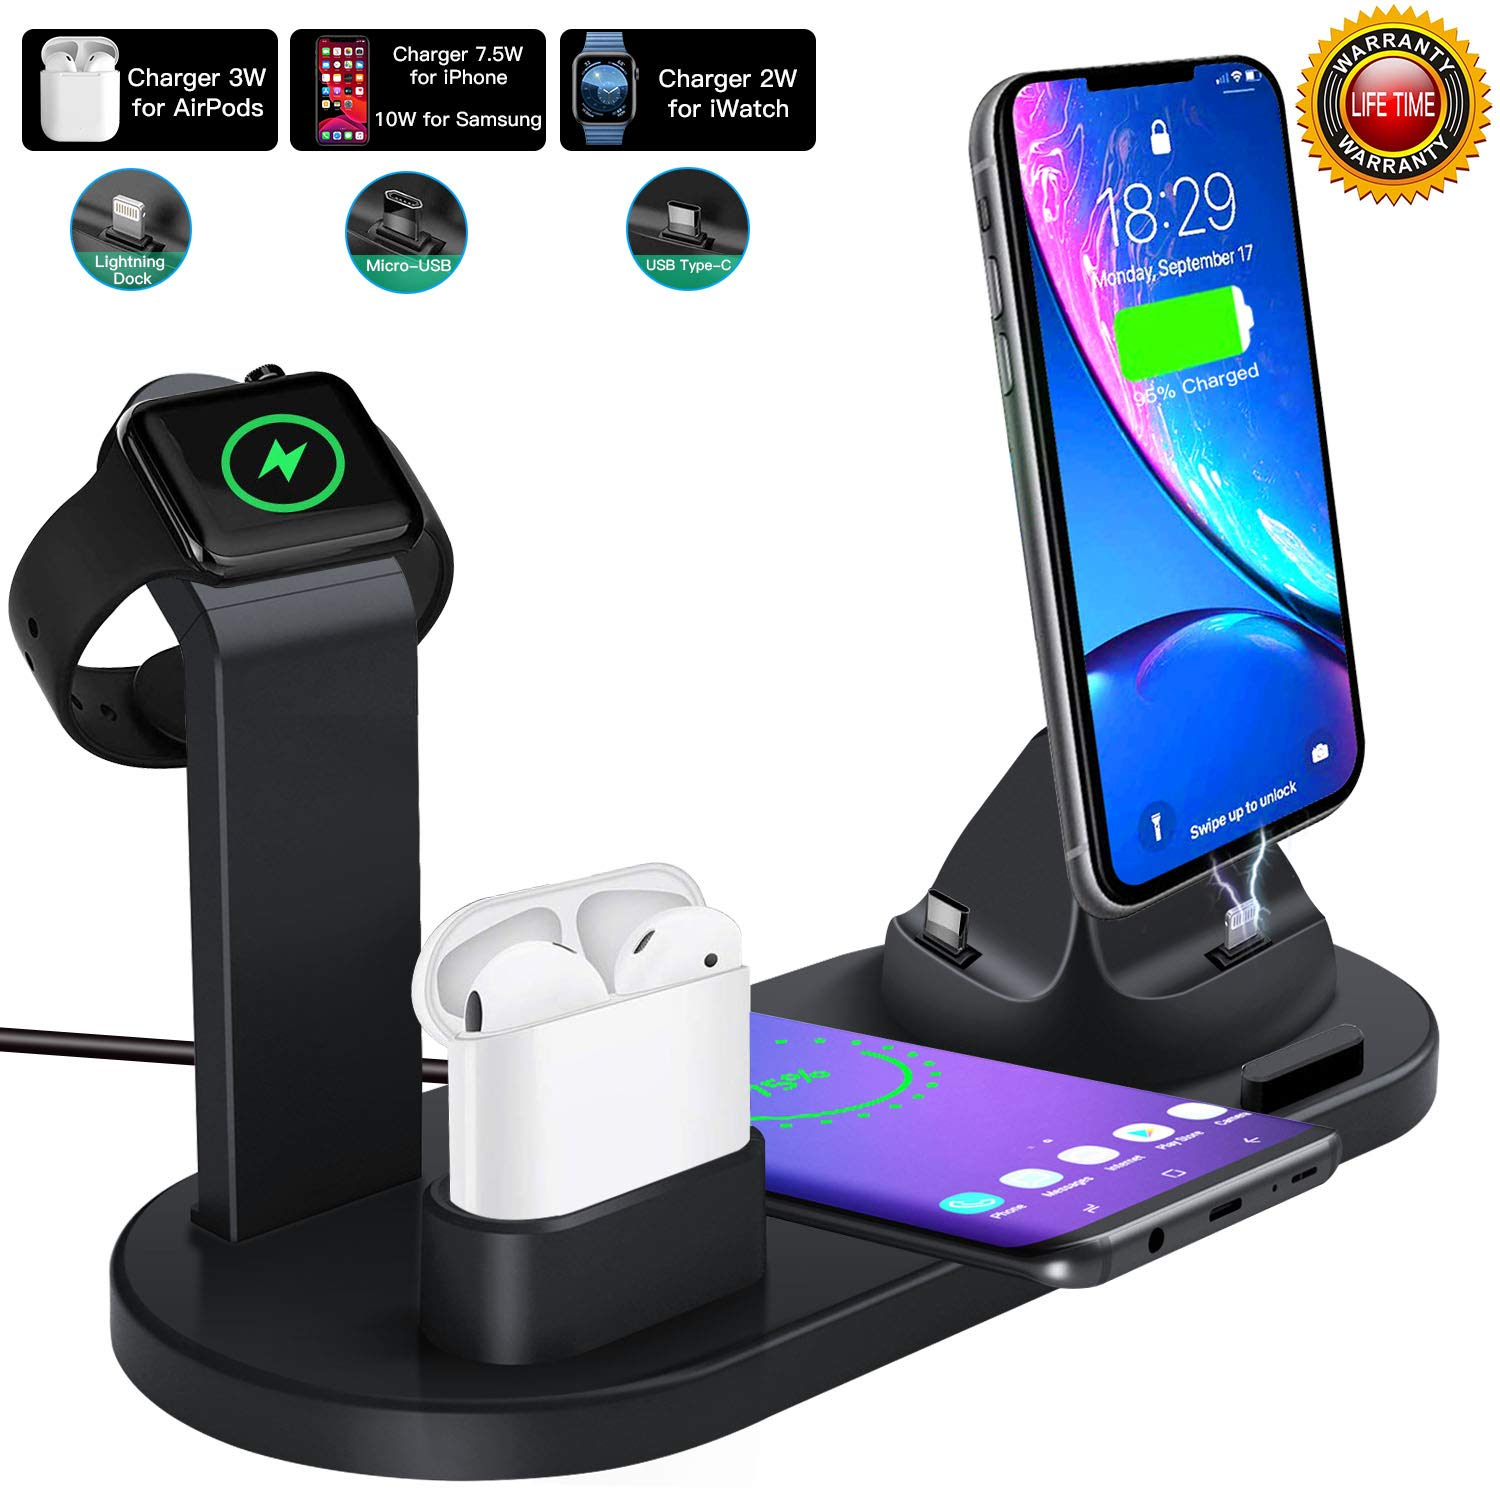 10W Fast Wireless Charger, 4 in 1 Qi Wireless Charging Stand, Multiple Devices Wireless Charger Dock Station for iPhone 11/11 Pro/11 Pro Max/8/8 Plus/X/Xs/XR/Xs Max/Airpods/iWatch/Samsung S10/S10+